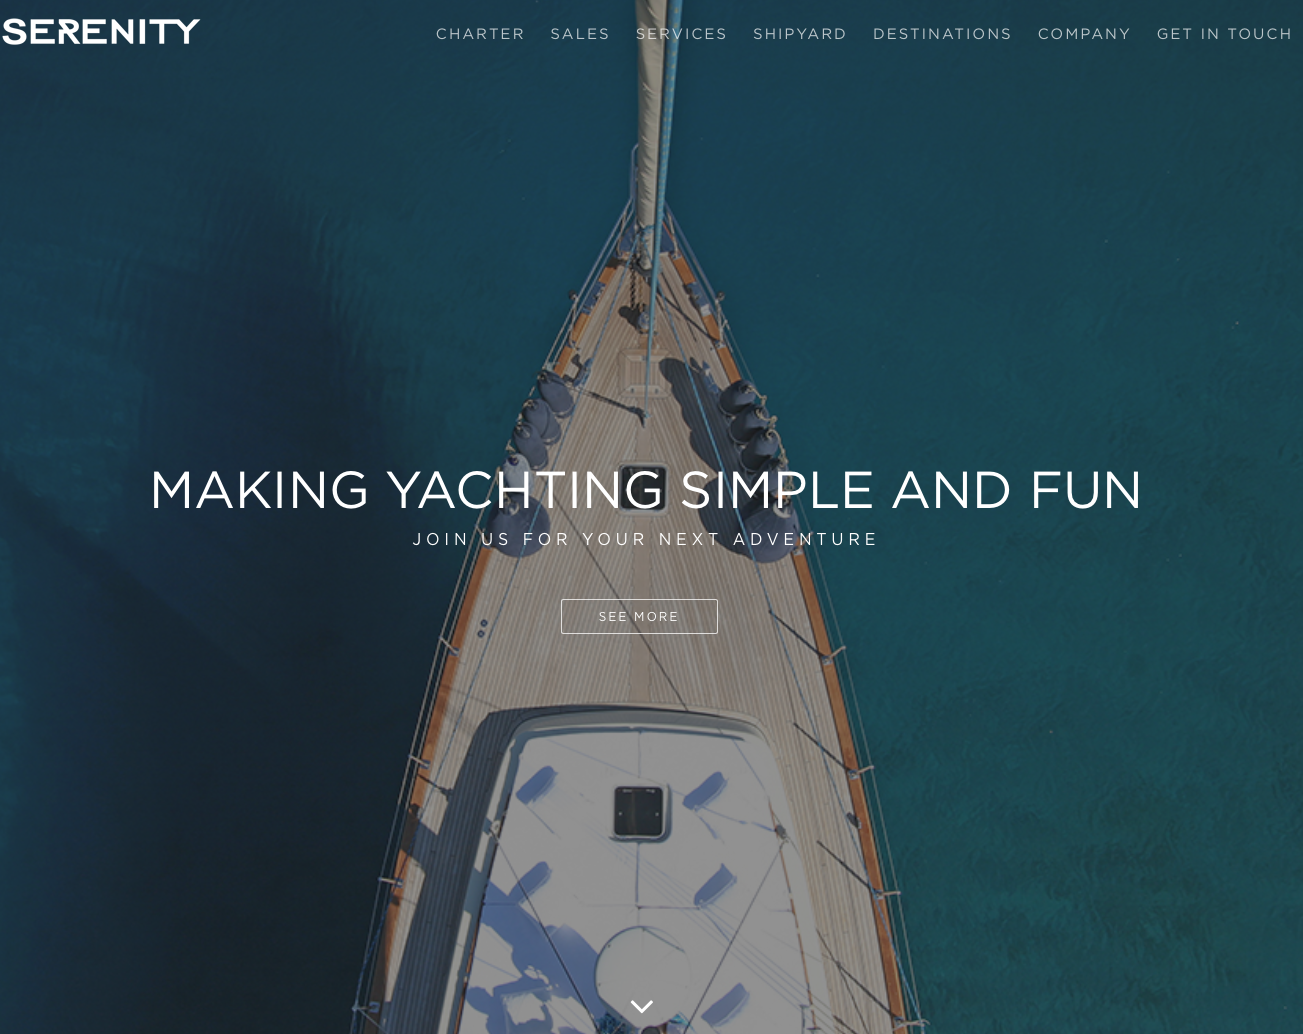 Serenity Yachting - A family run yacht charter and boatbuilding business with a commitment to excellence and amazing customer service. I rewrote their website to show why a vacation with them is truly special -- and a refreshing change from their corporate competitors. Check out the full site here.